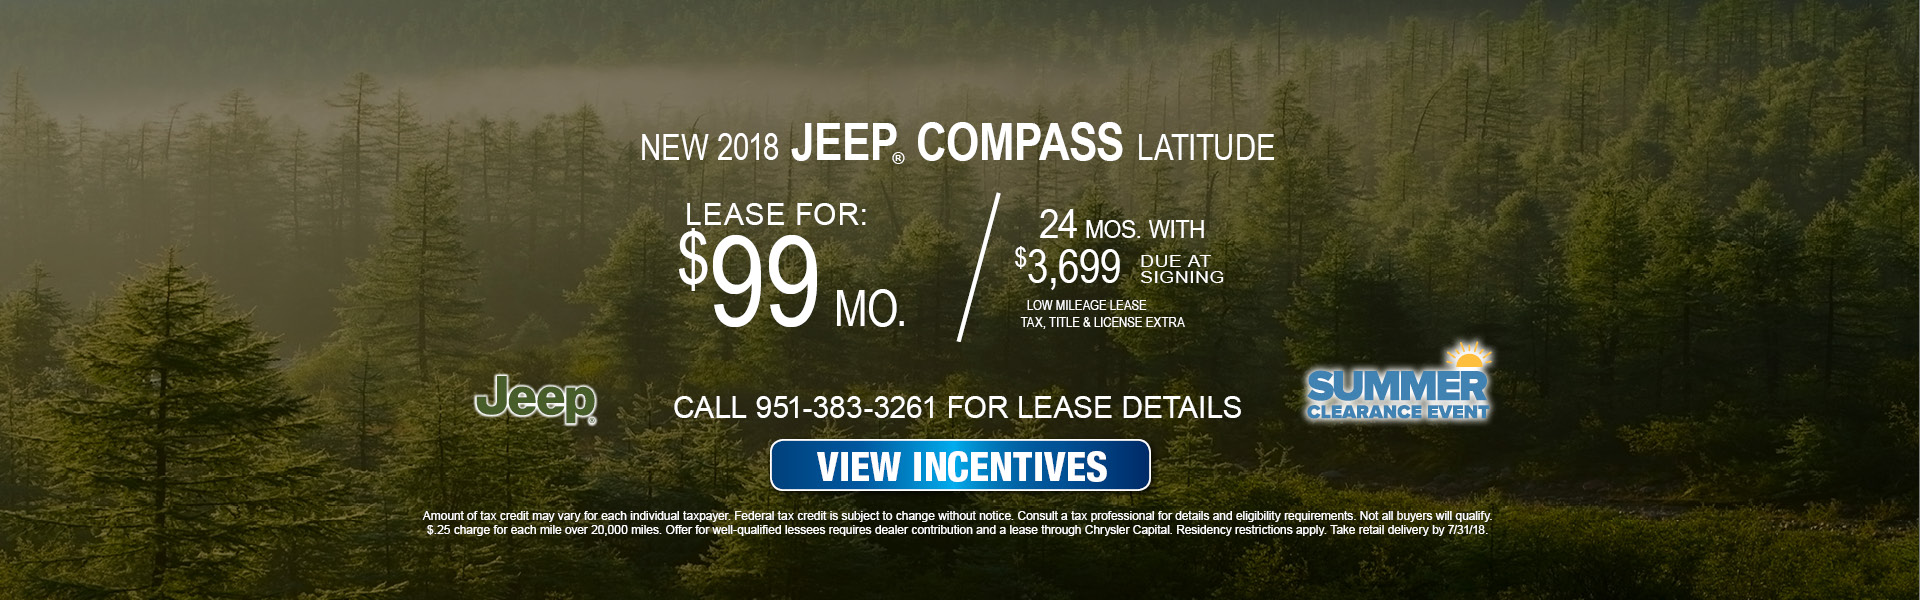 Jeep Compass $99 Lease